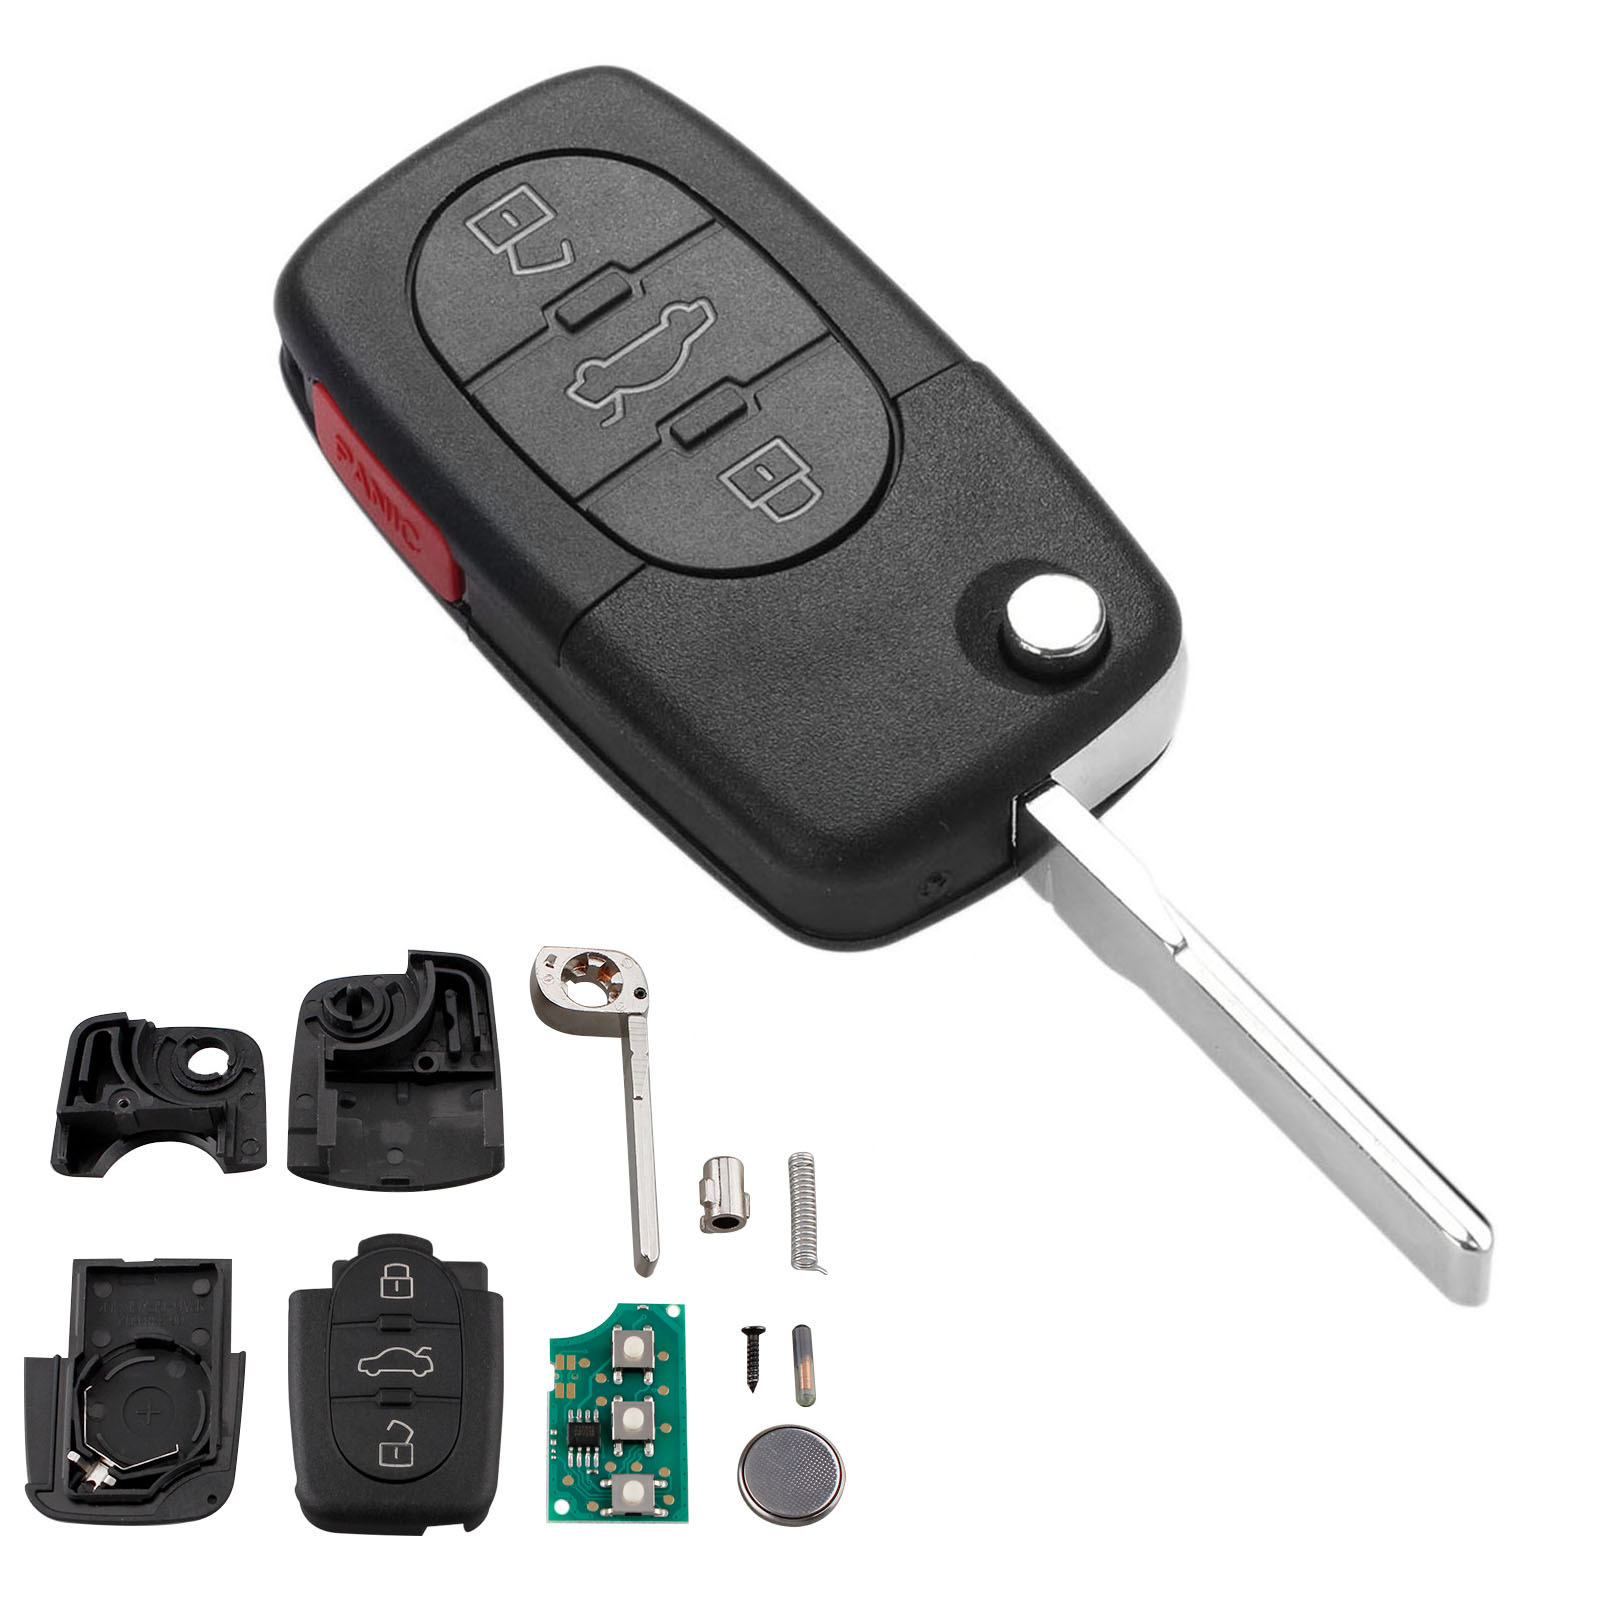 Yetaha 3+1Button 315MHz Car Remote Key For AUDI A4 S4 A6